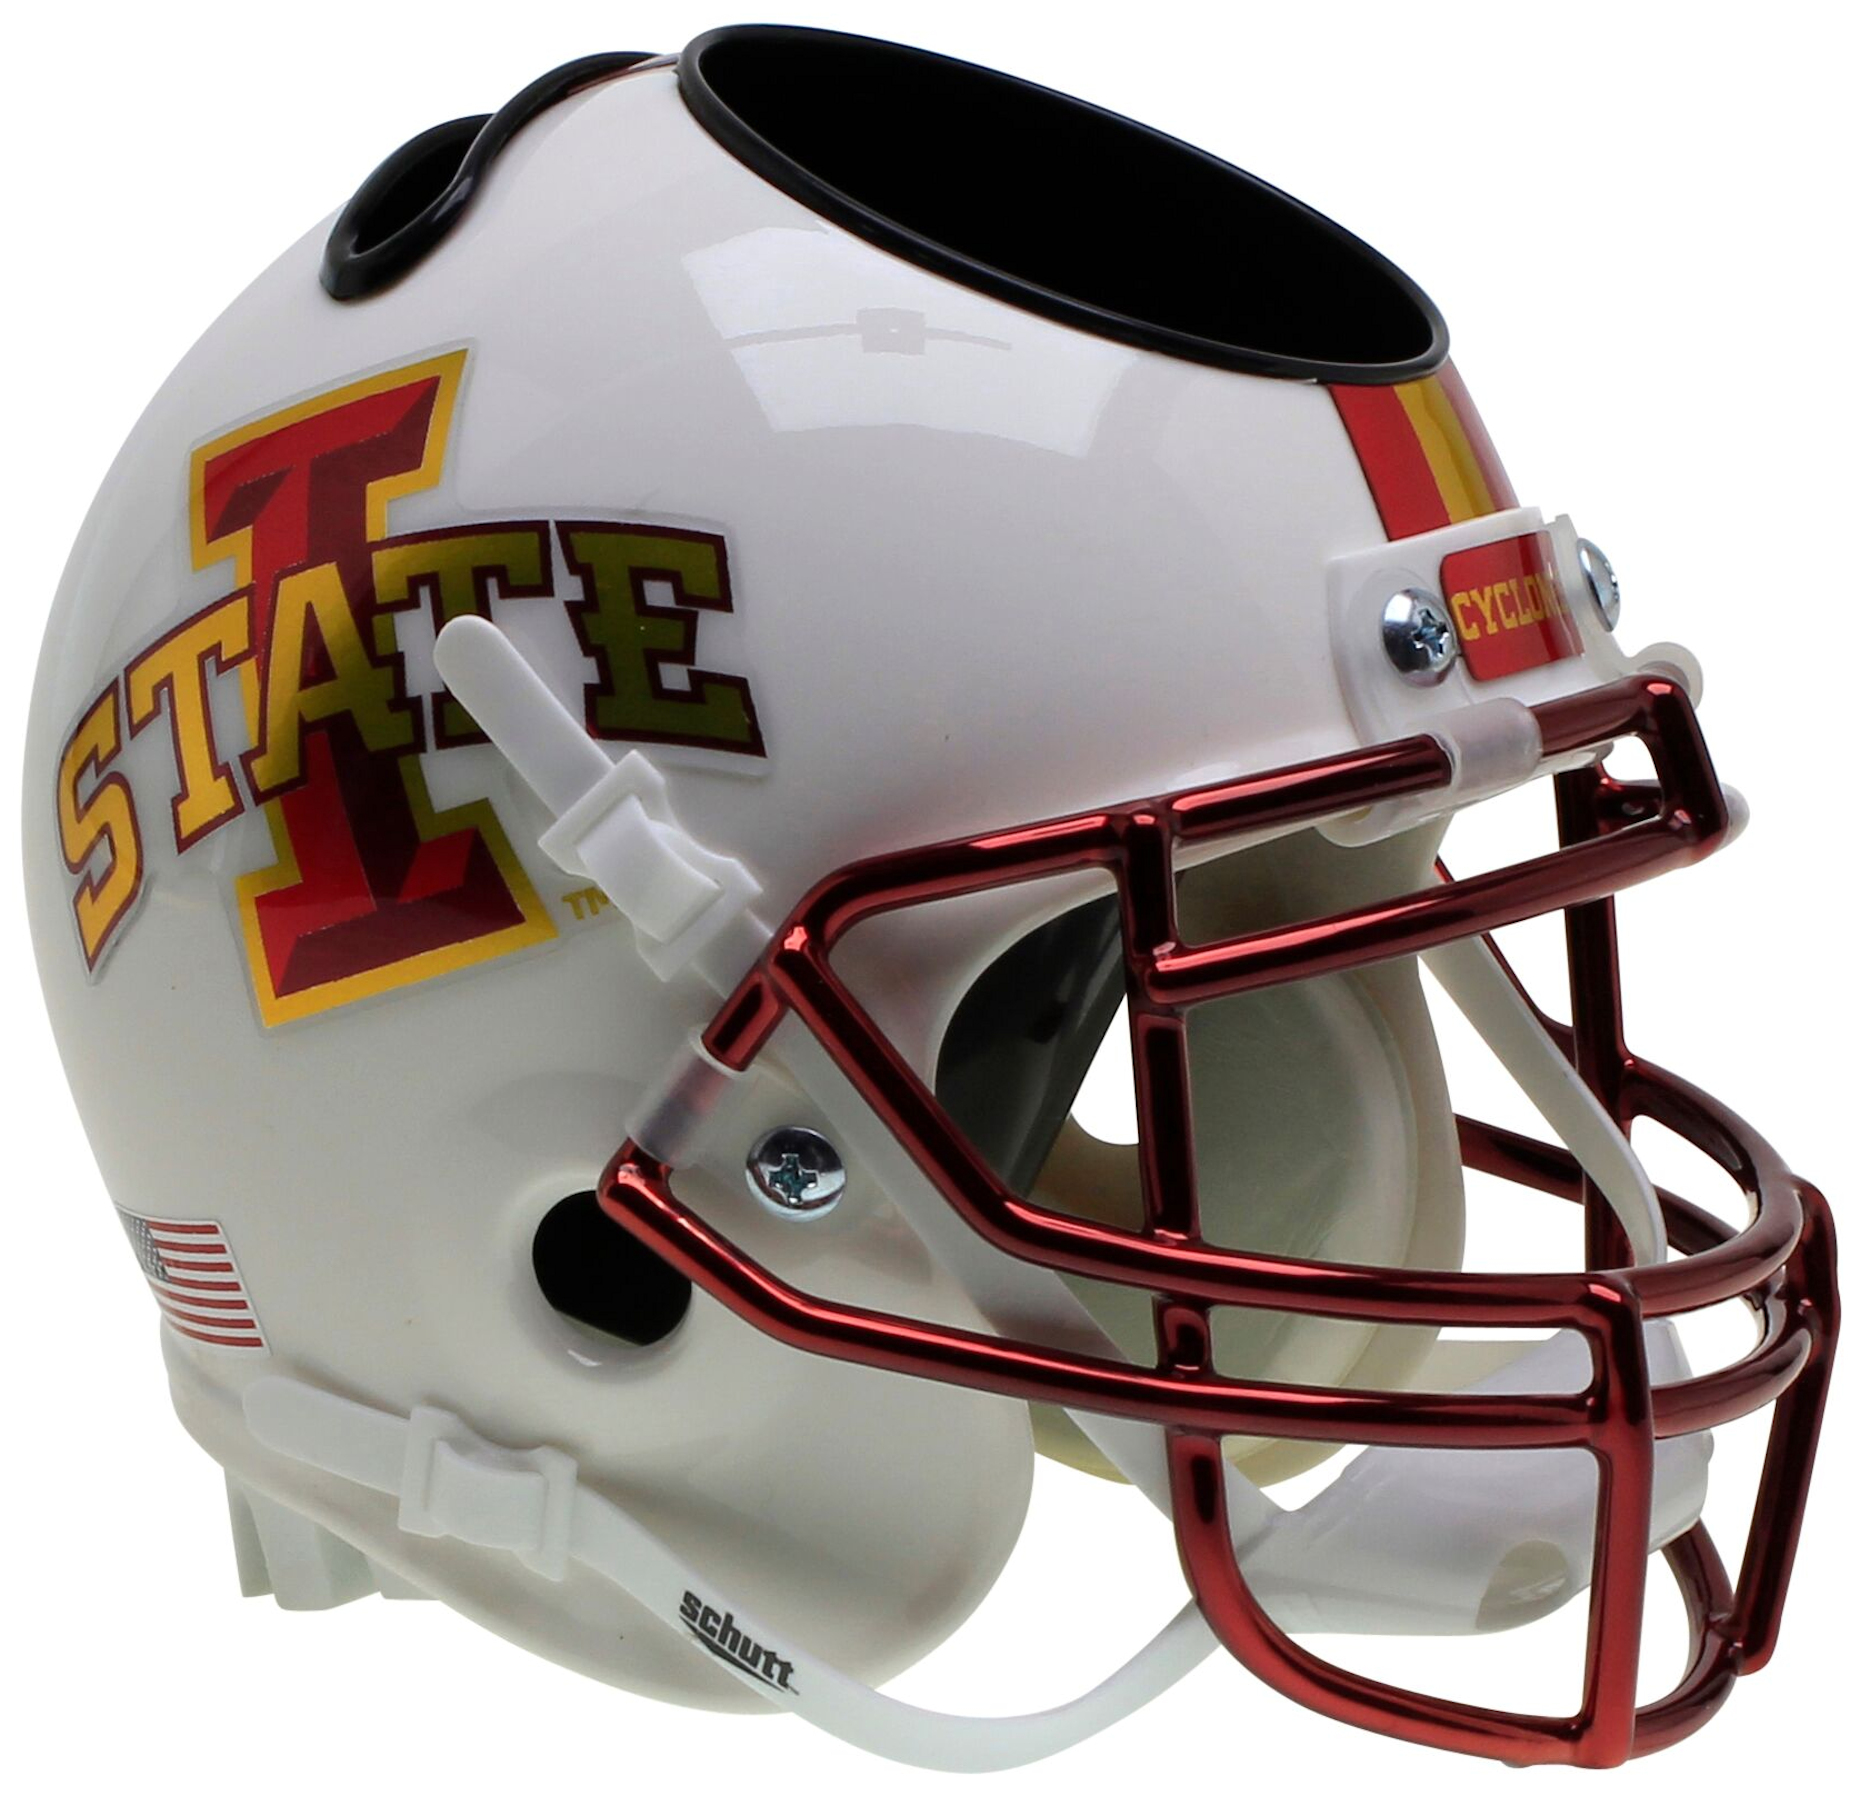 Iowa State Cyclones Miniature Football Helmet Desk Caddy <B>White</B>